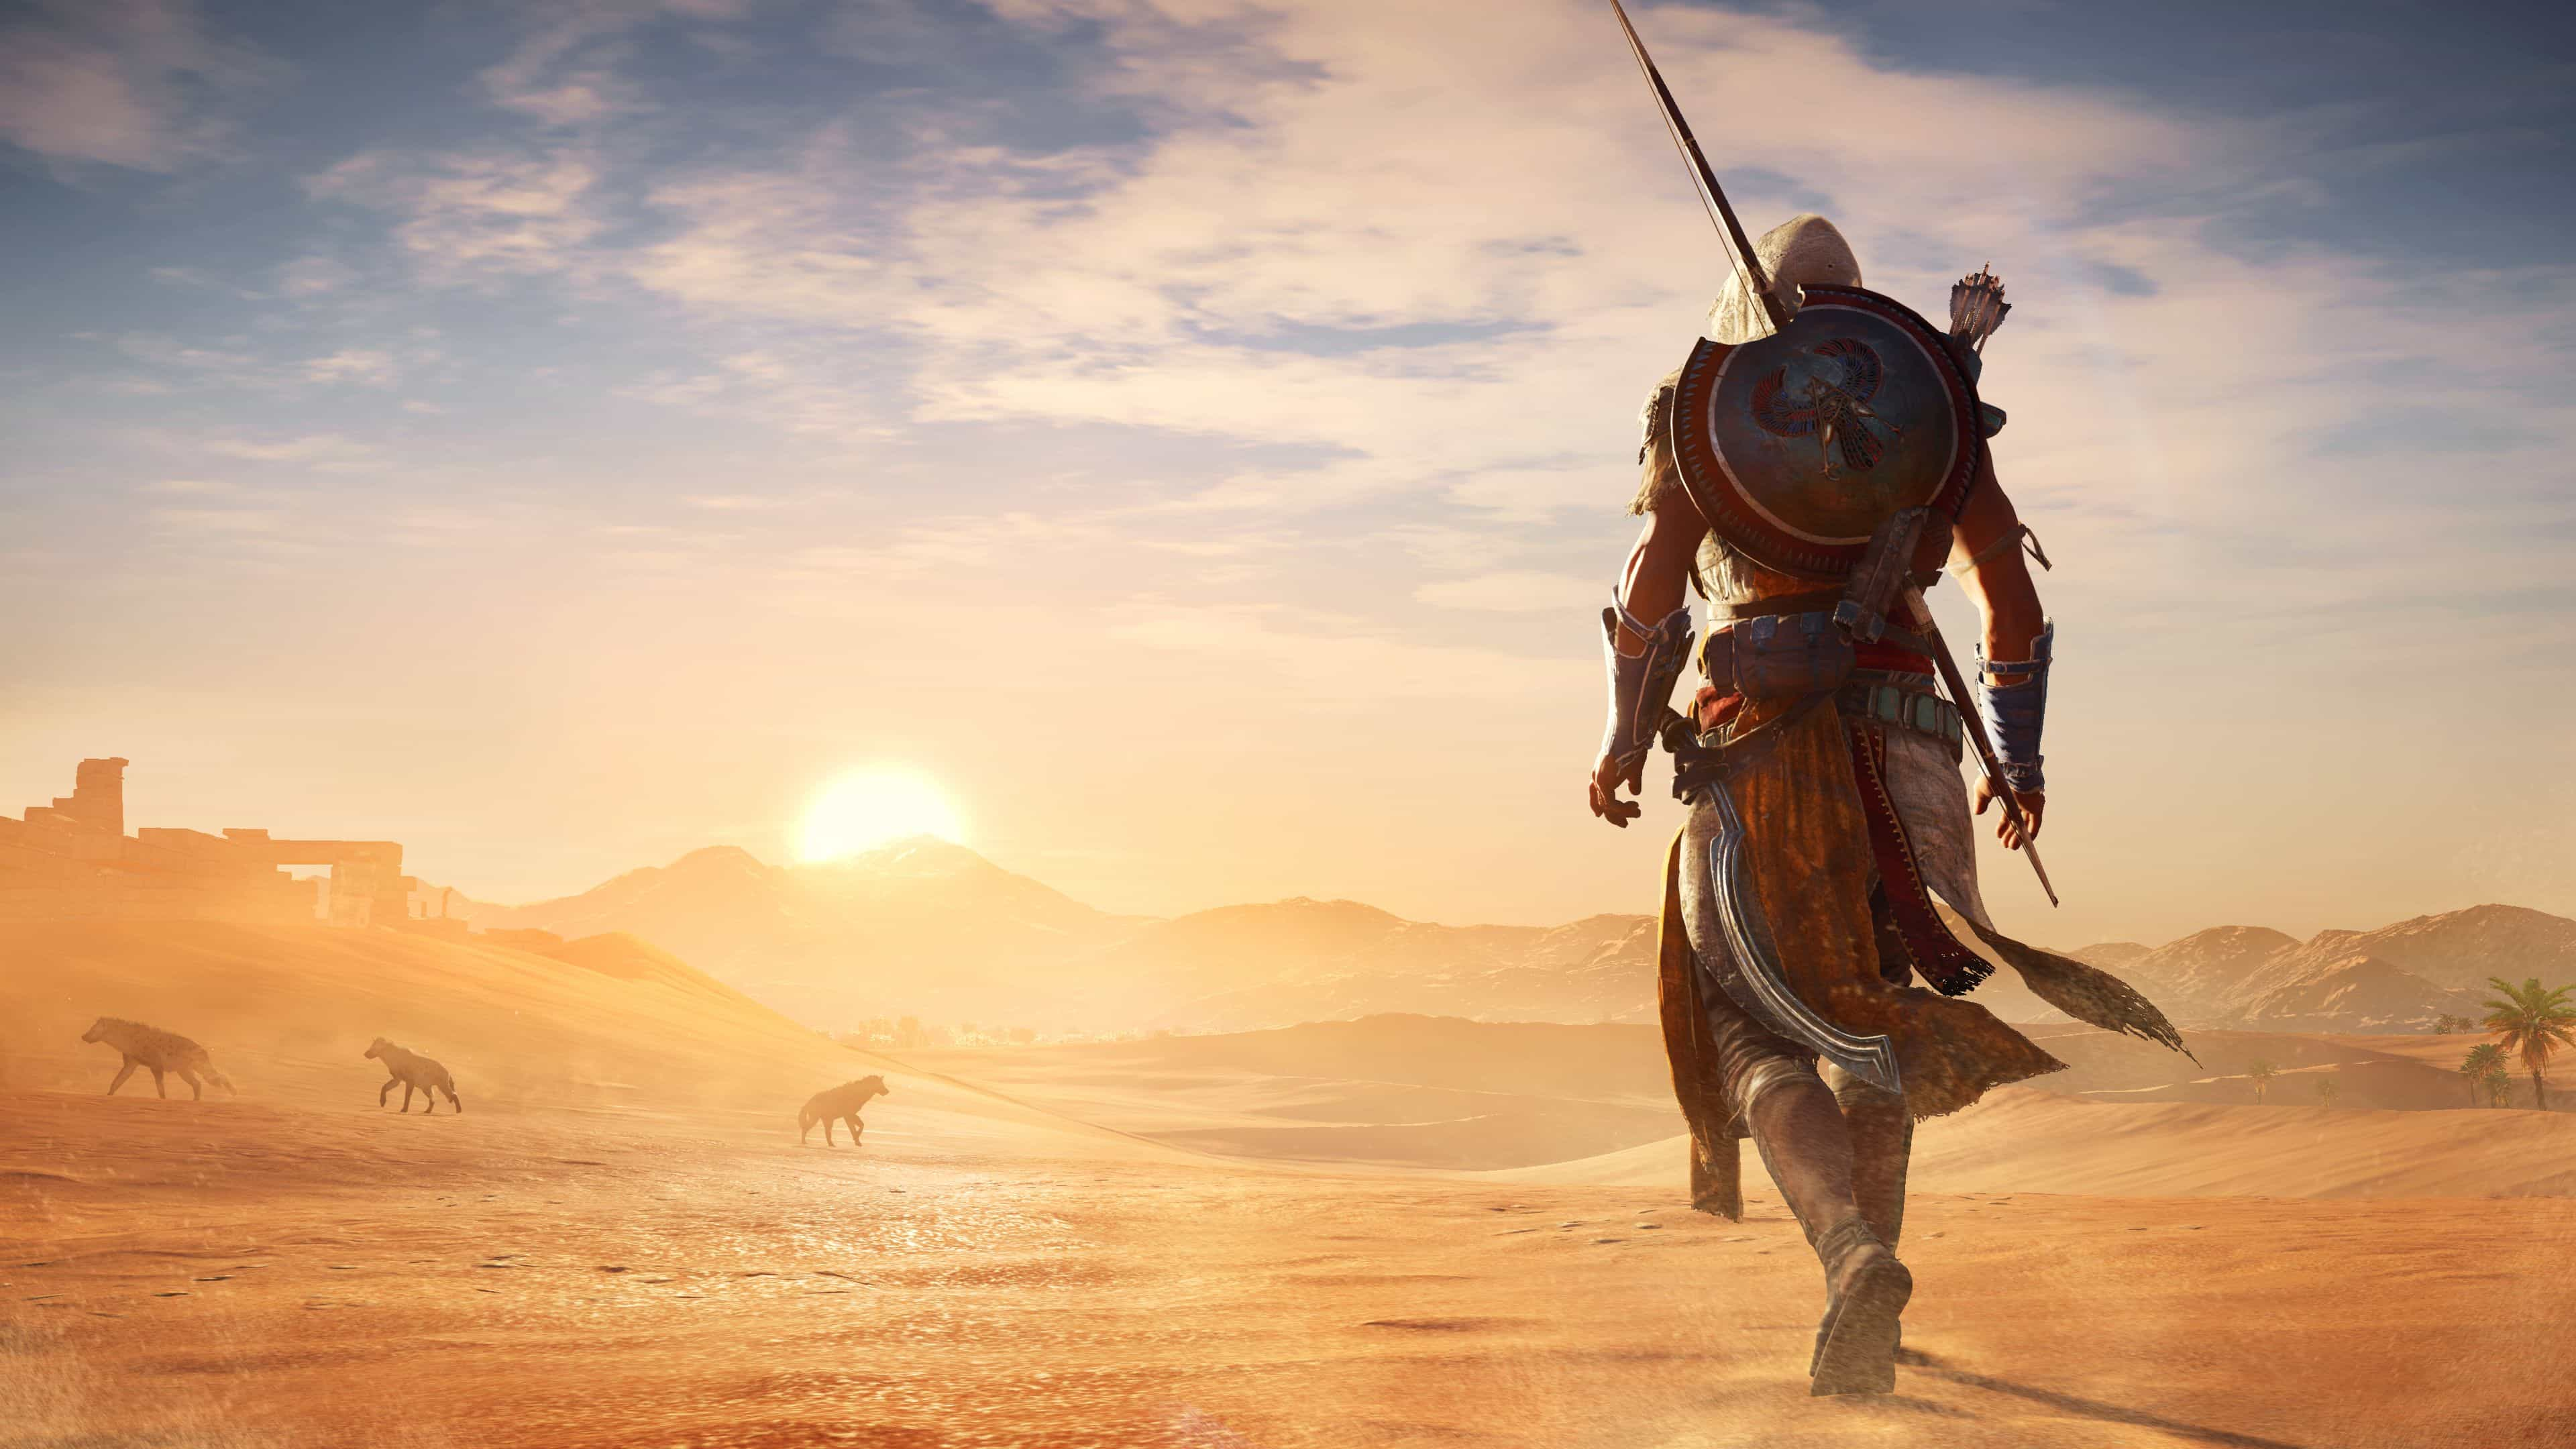 Ubisoft Details Upcoming Assassin's Creed Origins DLC With New Gameplay